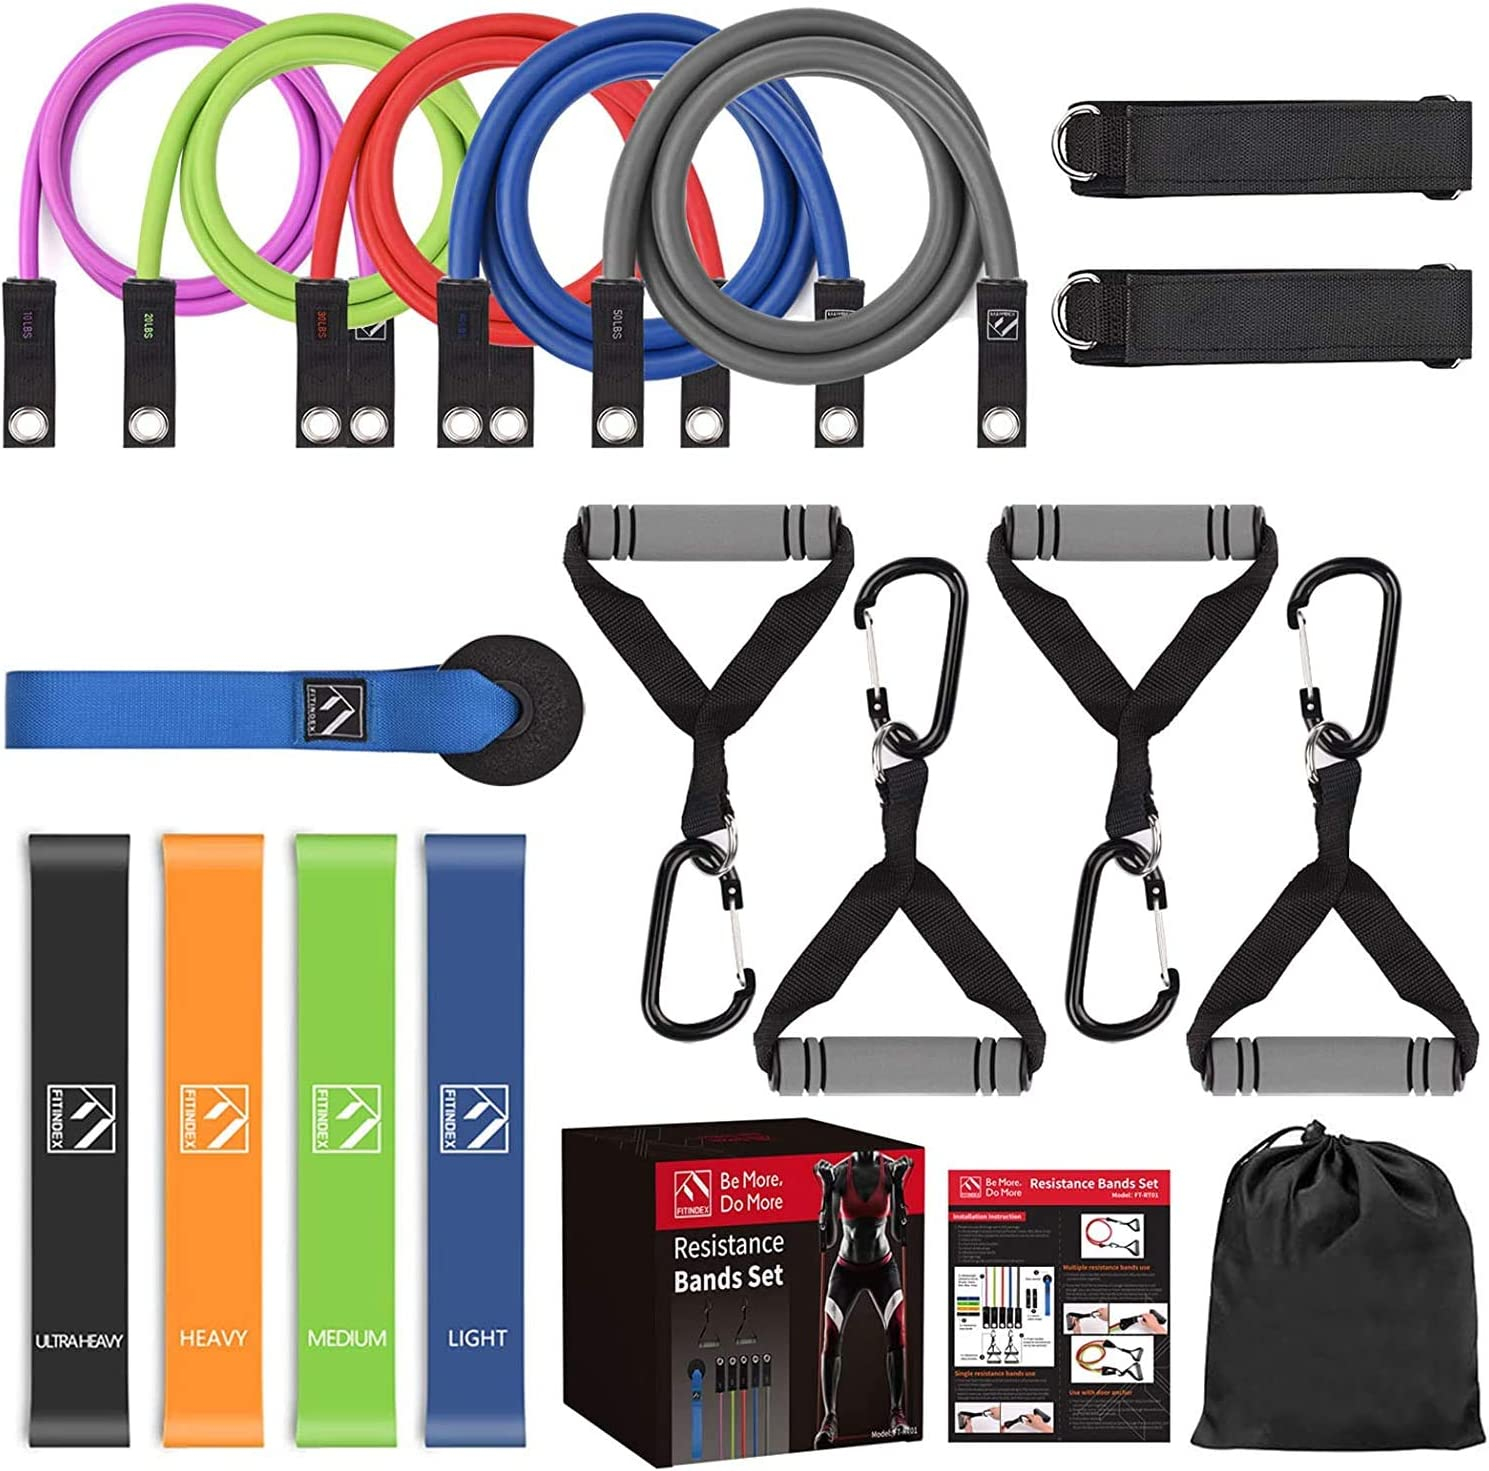 AU STOCK 11 PIECES RESISTANCE BANDS UP TO 150LB WITH INSTRUCTIONS